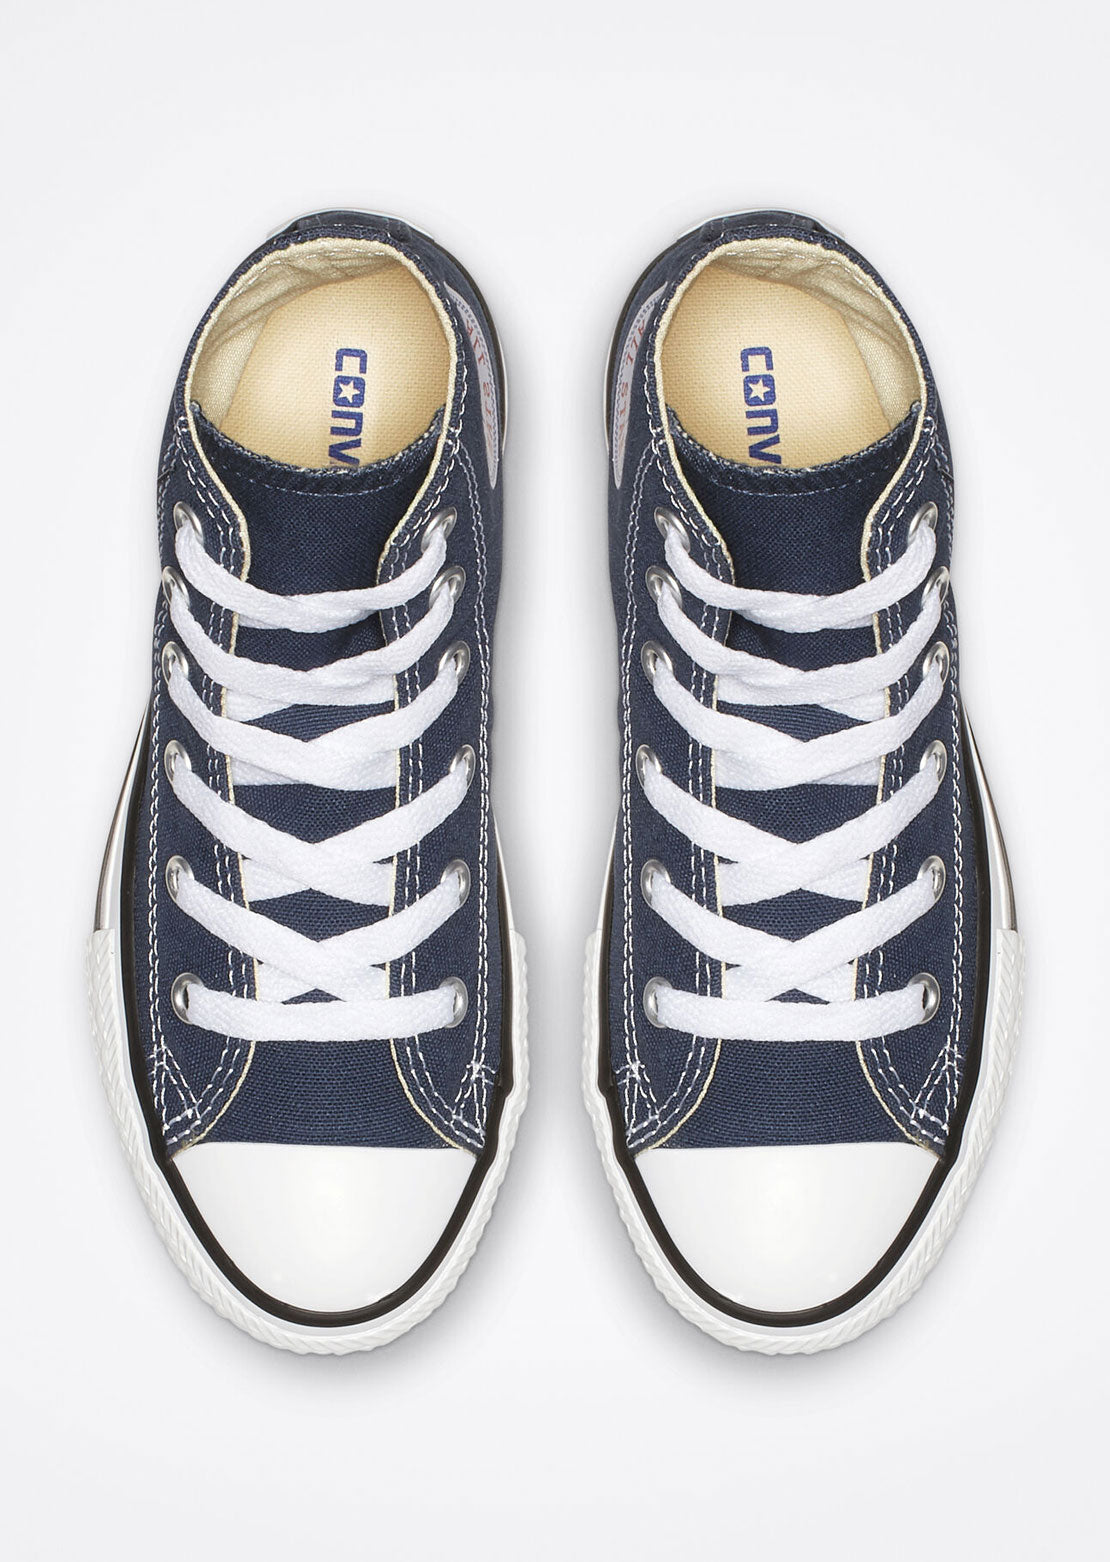 Converse Junior Chuck Taylor All Star Hi Top Shoes 3J233C Navy